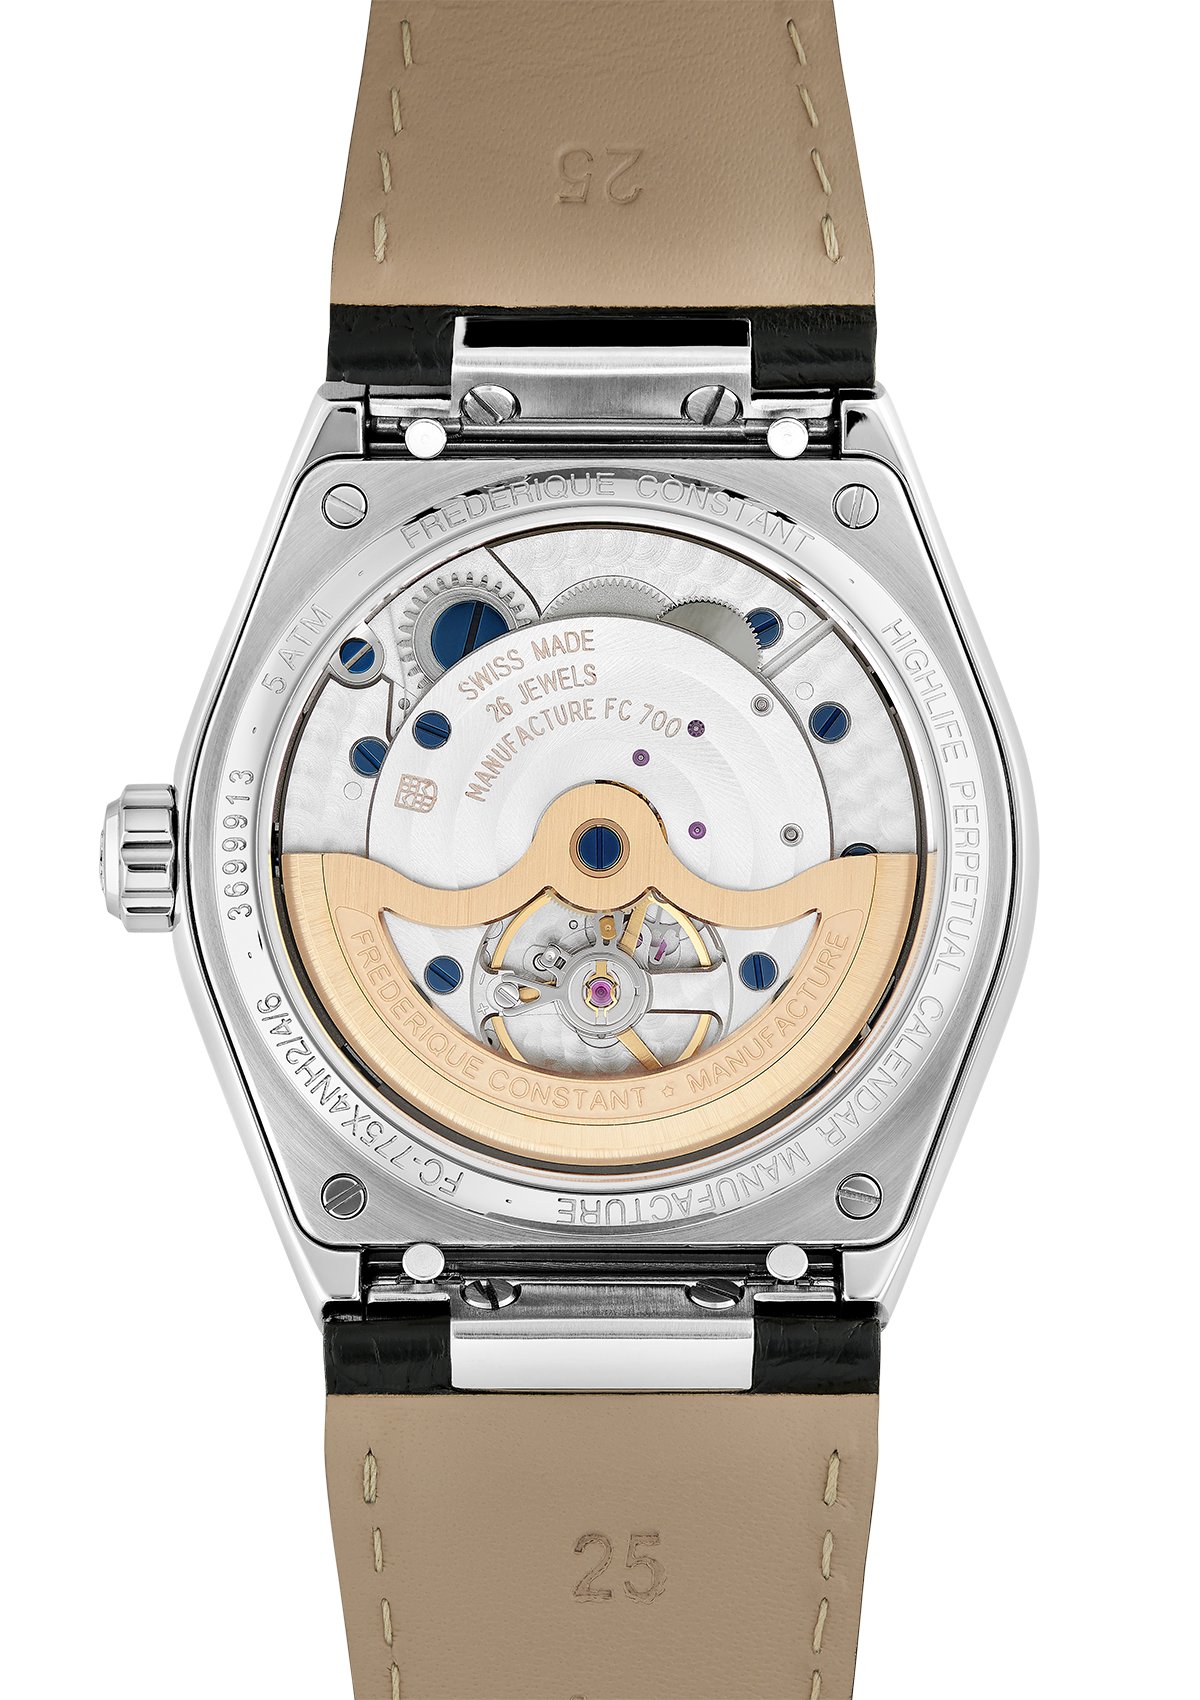 Highlife Perpetual Calendar Manufacture